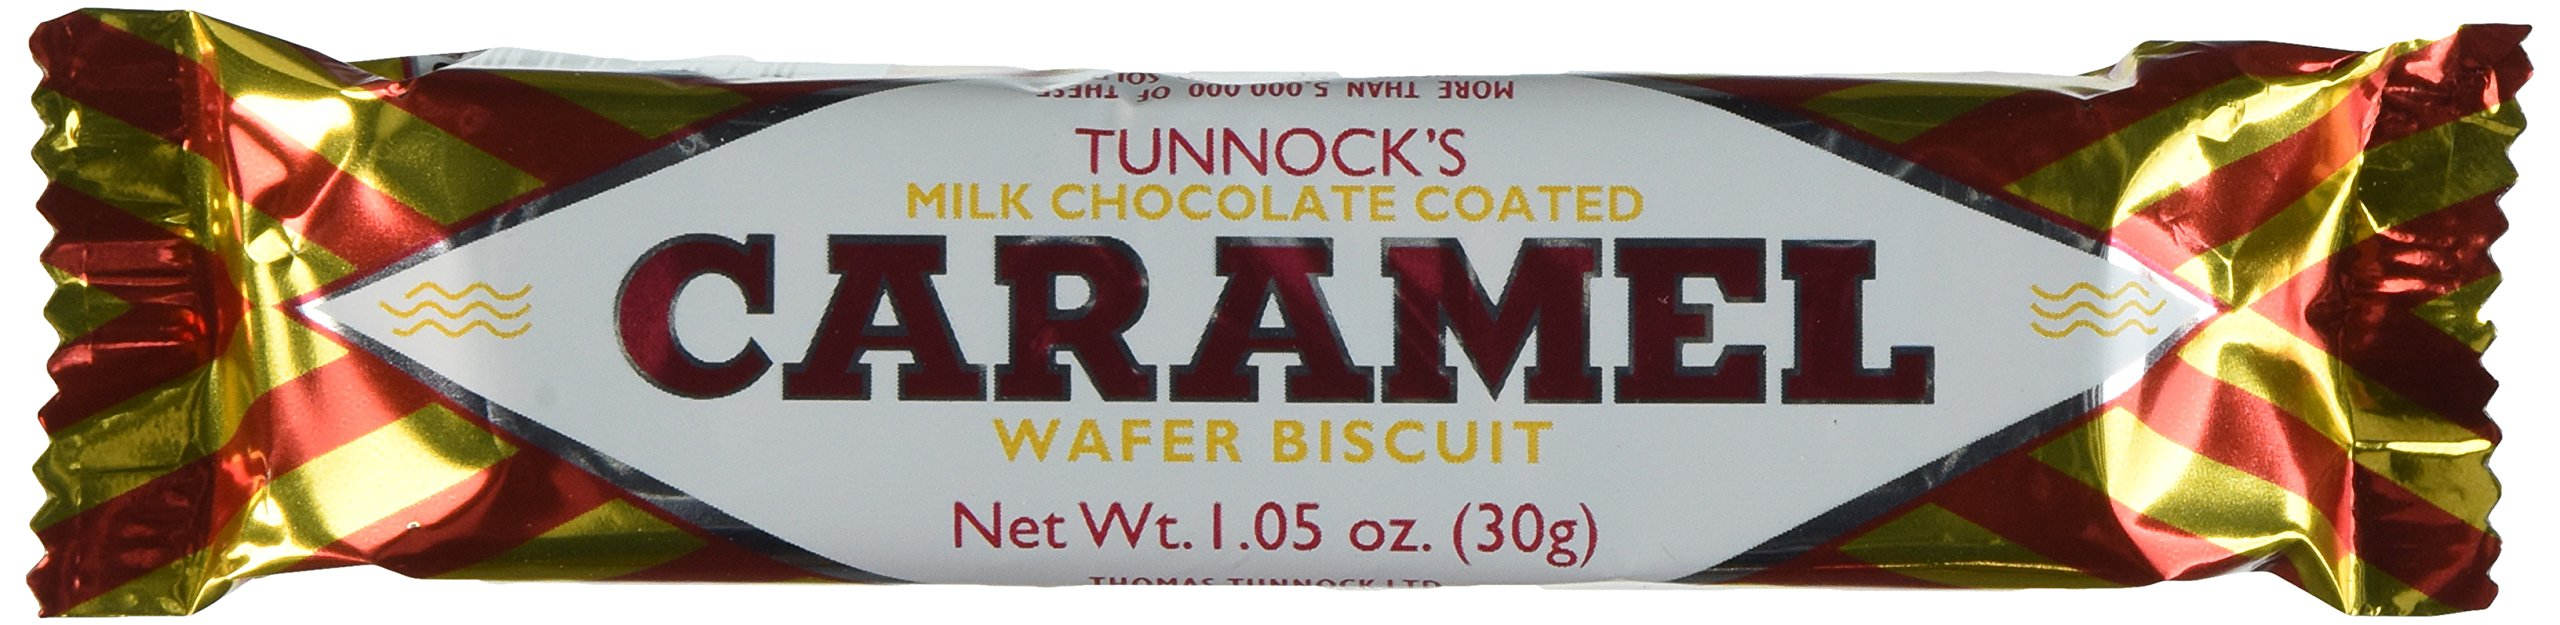 Tunnock's Caramel Wafer Biscuits 30g (Box of 48)